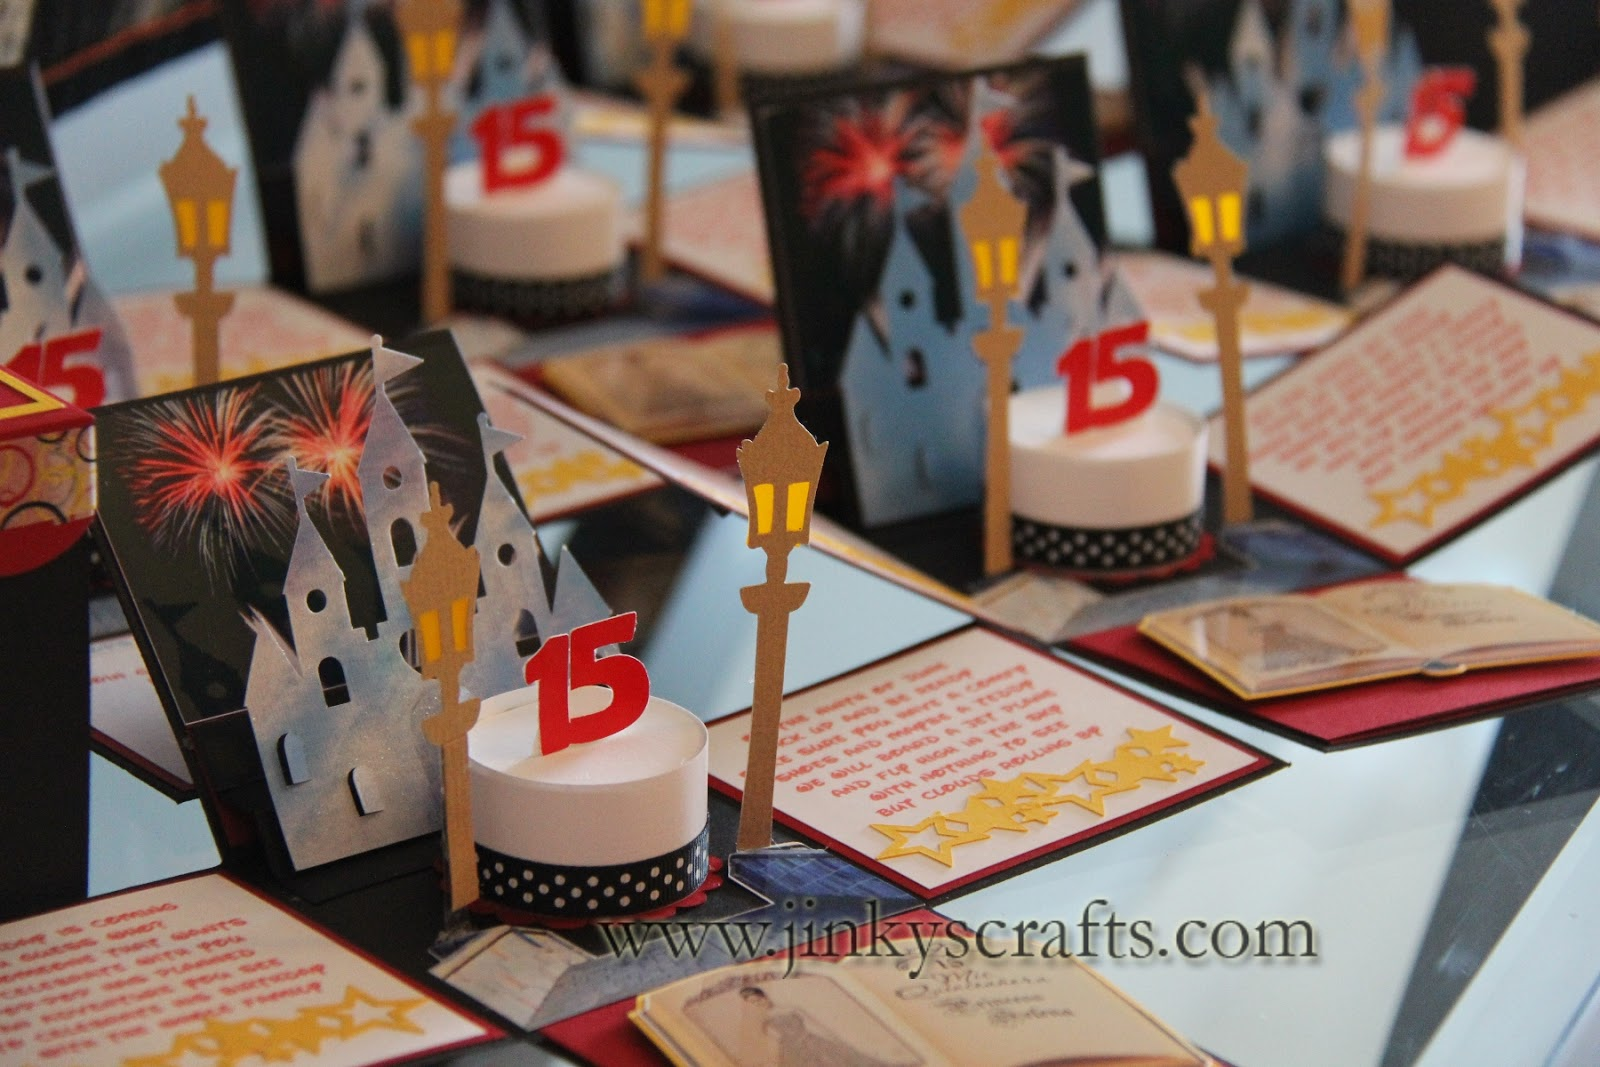 Jinkys Crafts Designs Disney Inspired Creative Invitations